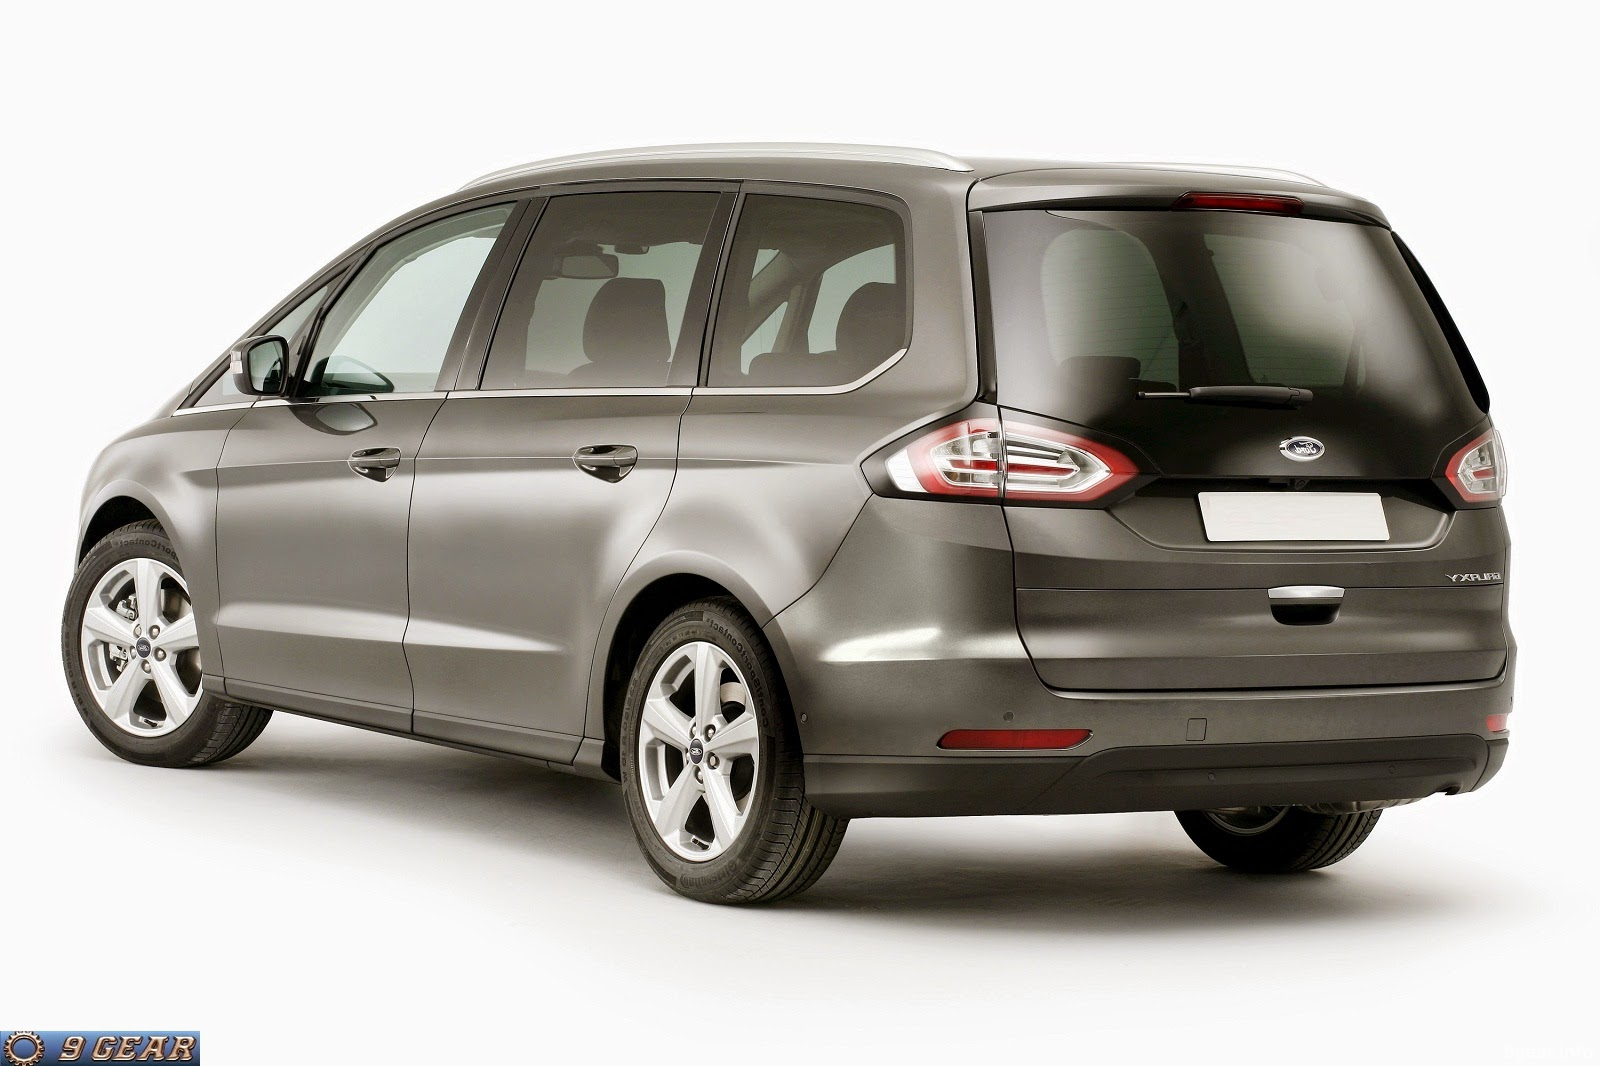 car reviews new car pictures for 2018 2019 2016 ford galaxy 2 0 litre tdci diesel. Black Bedroom Furniture Sets. Home Design Ideas